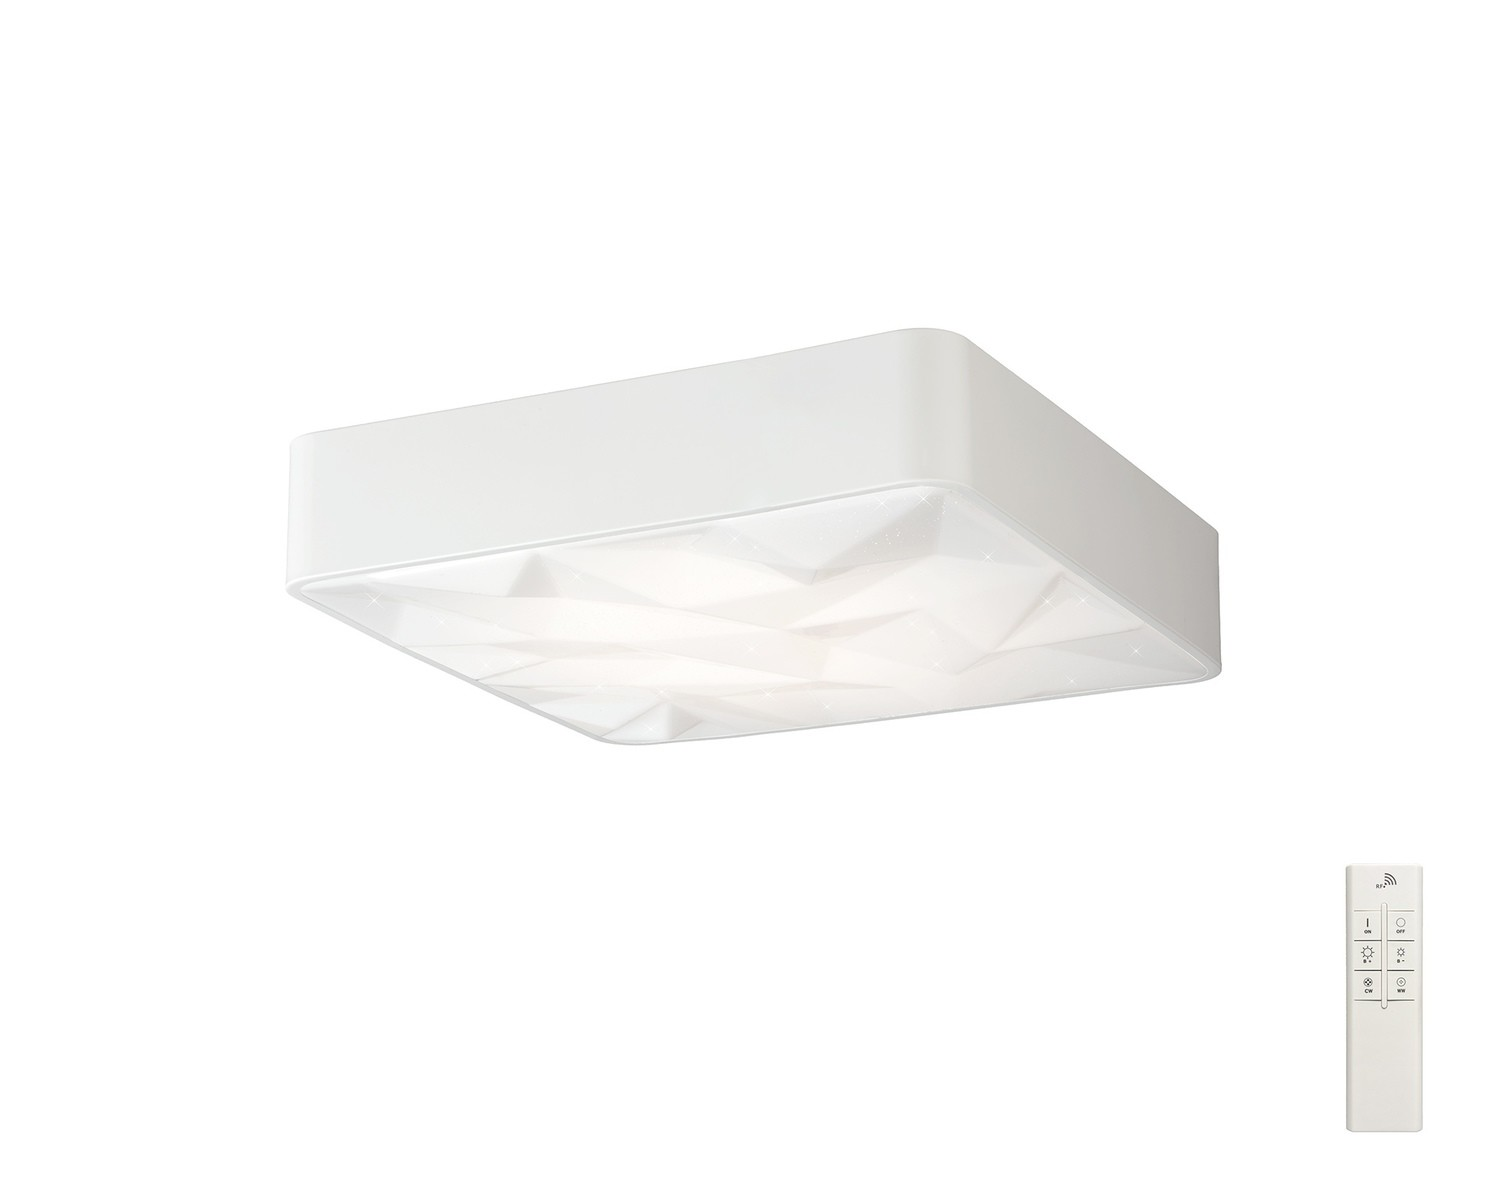 Rombos Flush 50cm Square 40W LED 3000-6500K Tuneable, 3100lm, Remote Control White, 3yrs Warranty